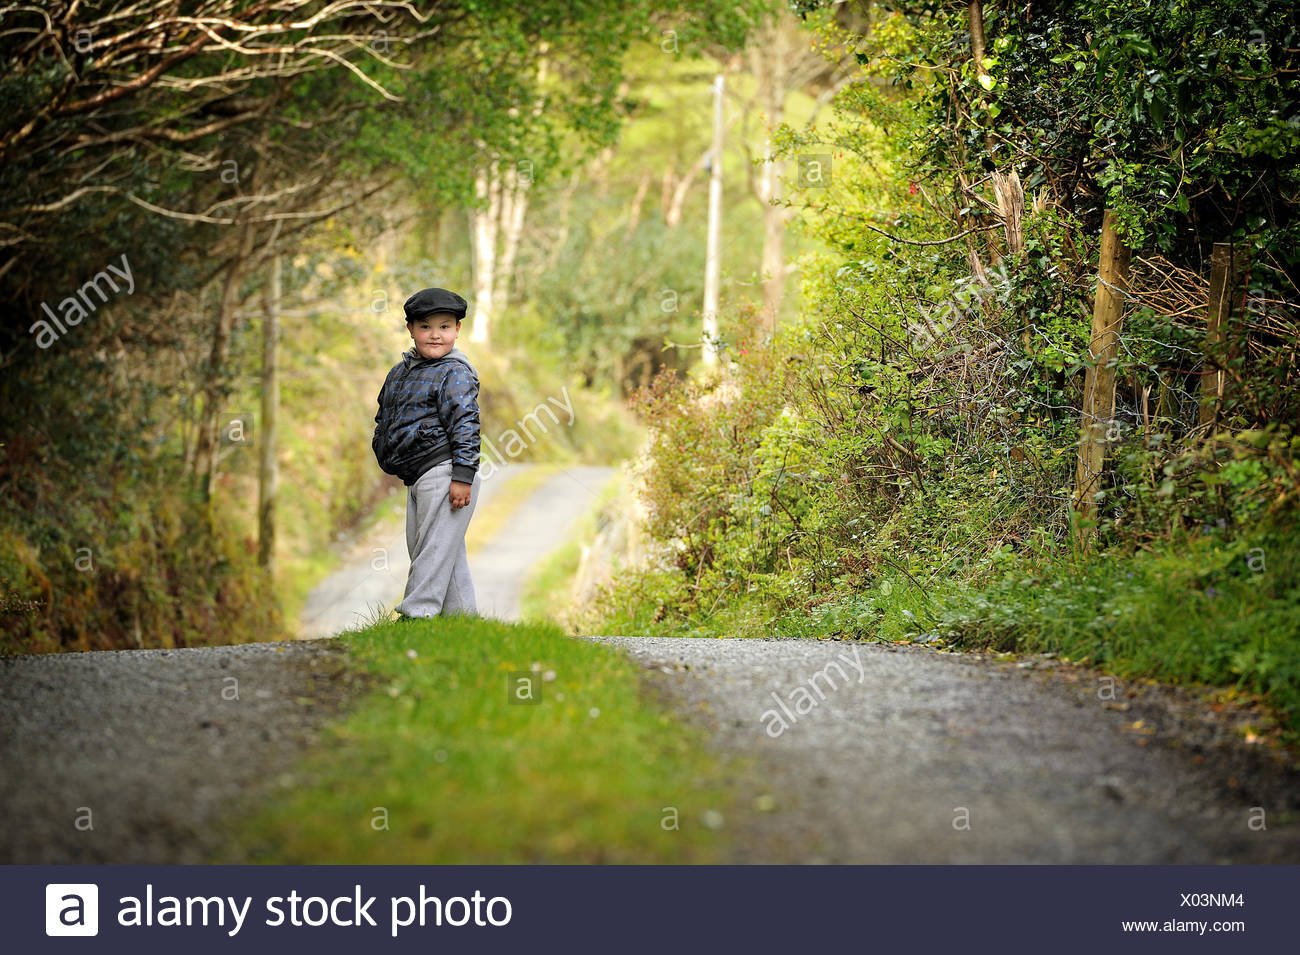 Boy standing in the middle of country road - Stock Image